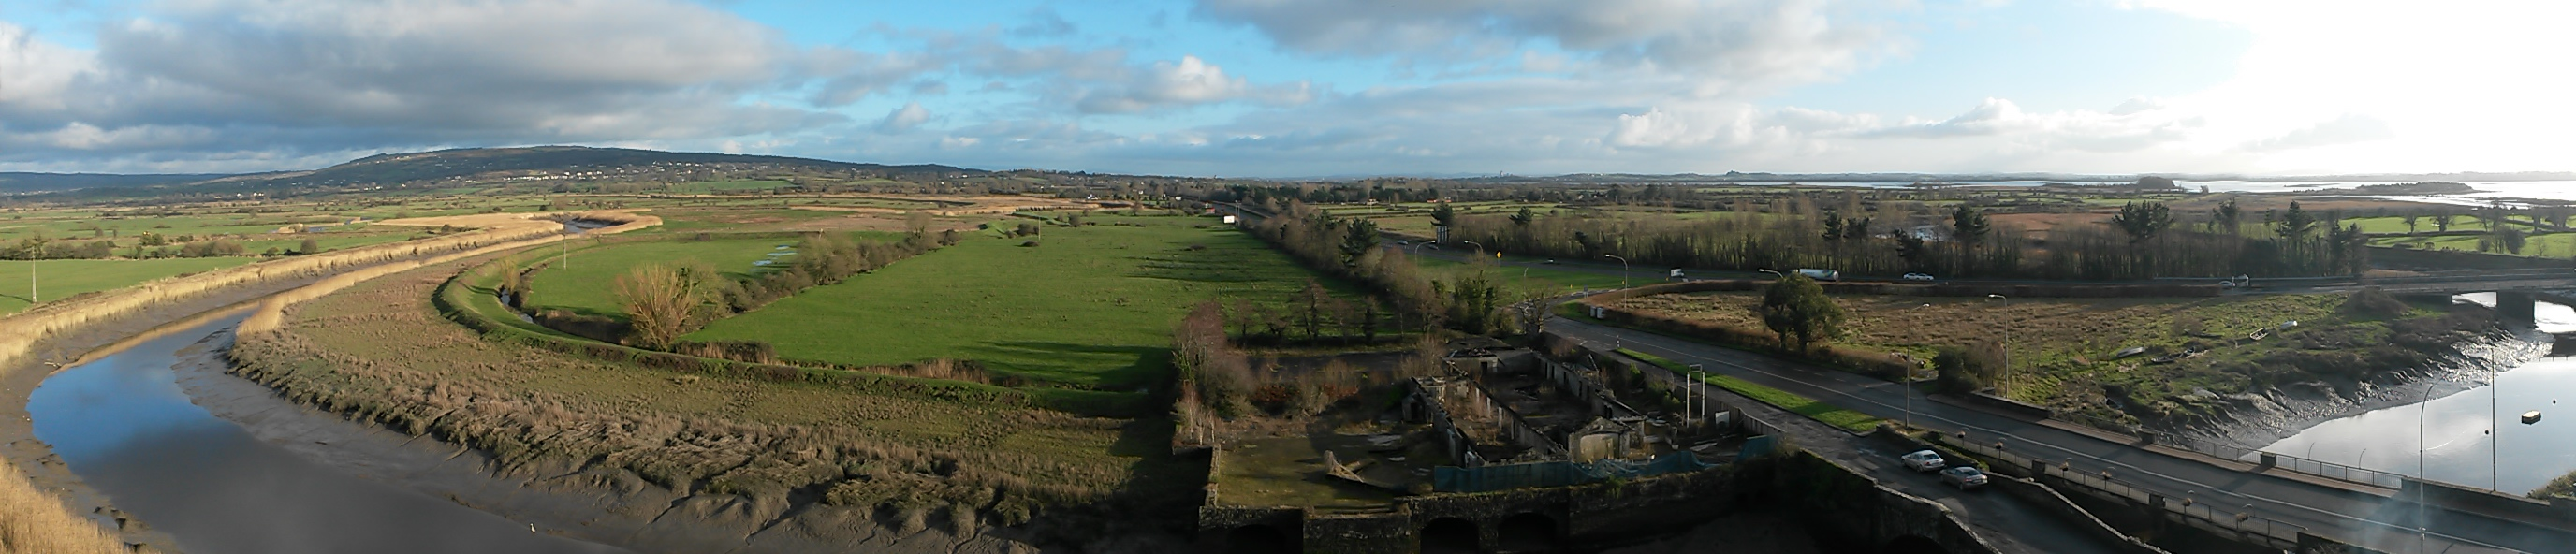 The views of Ireland from the top of Bunratty Castle